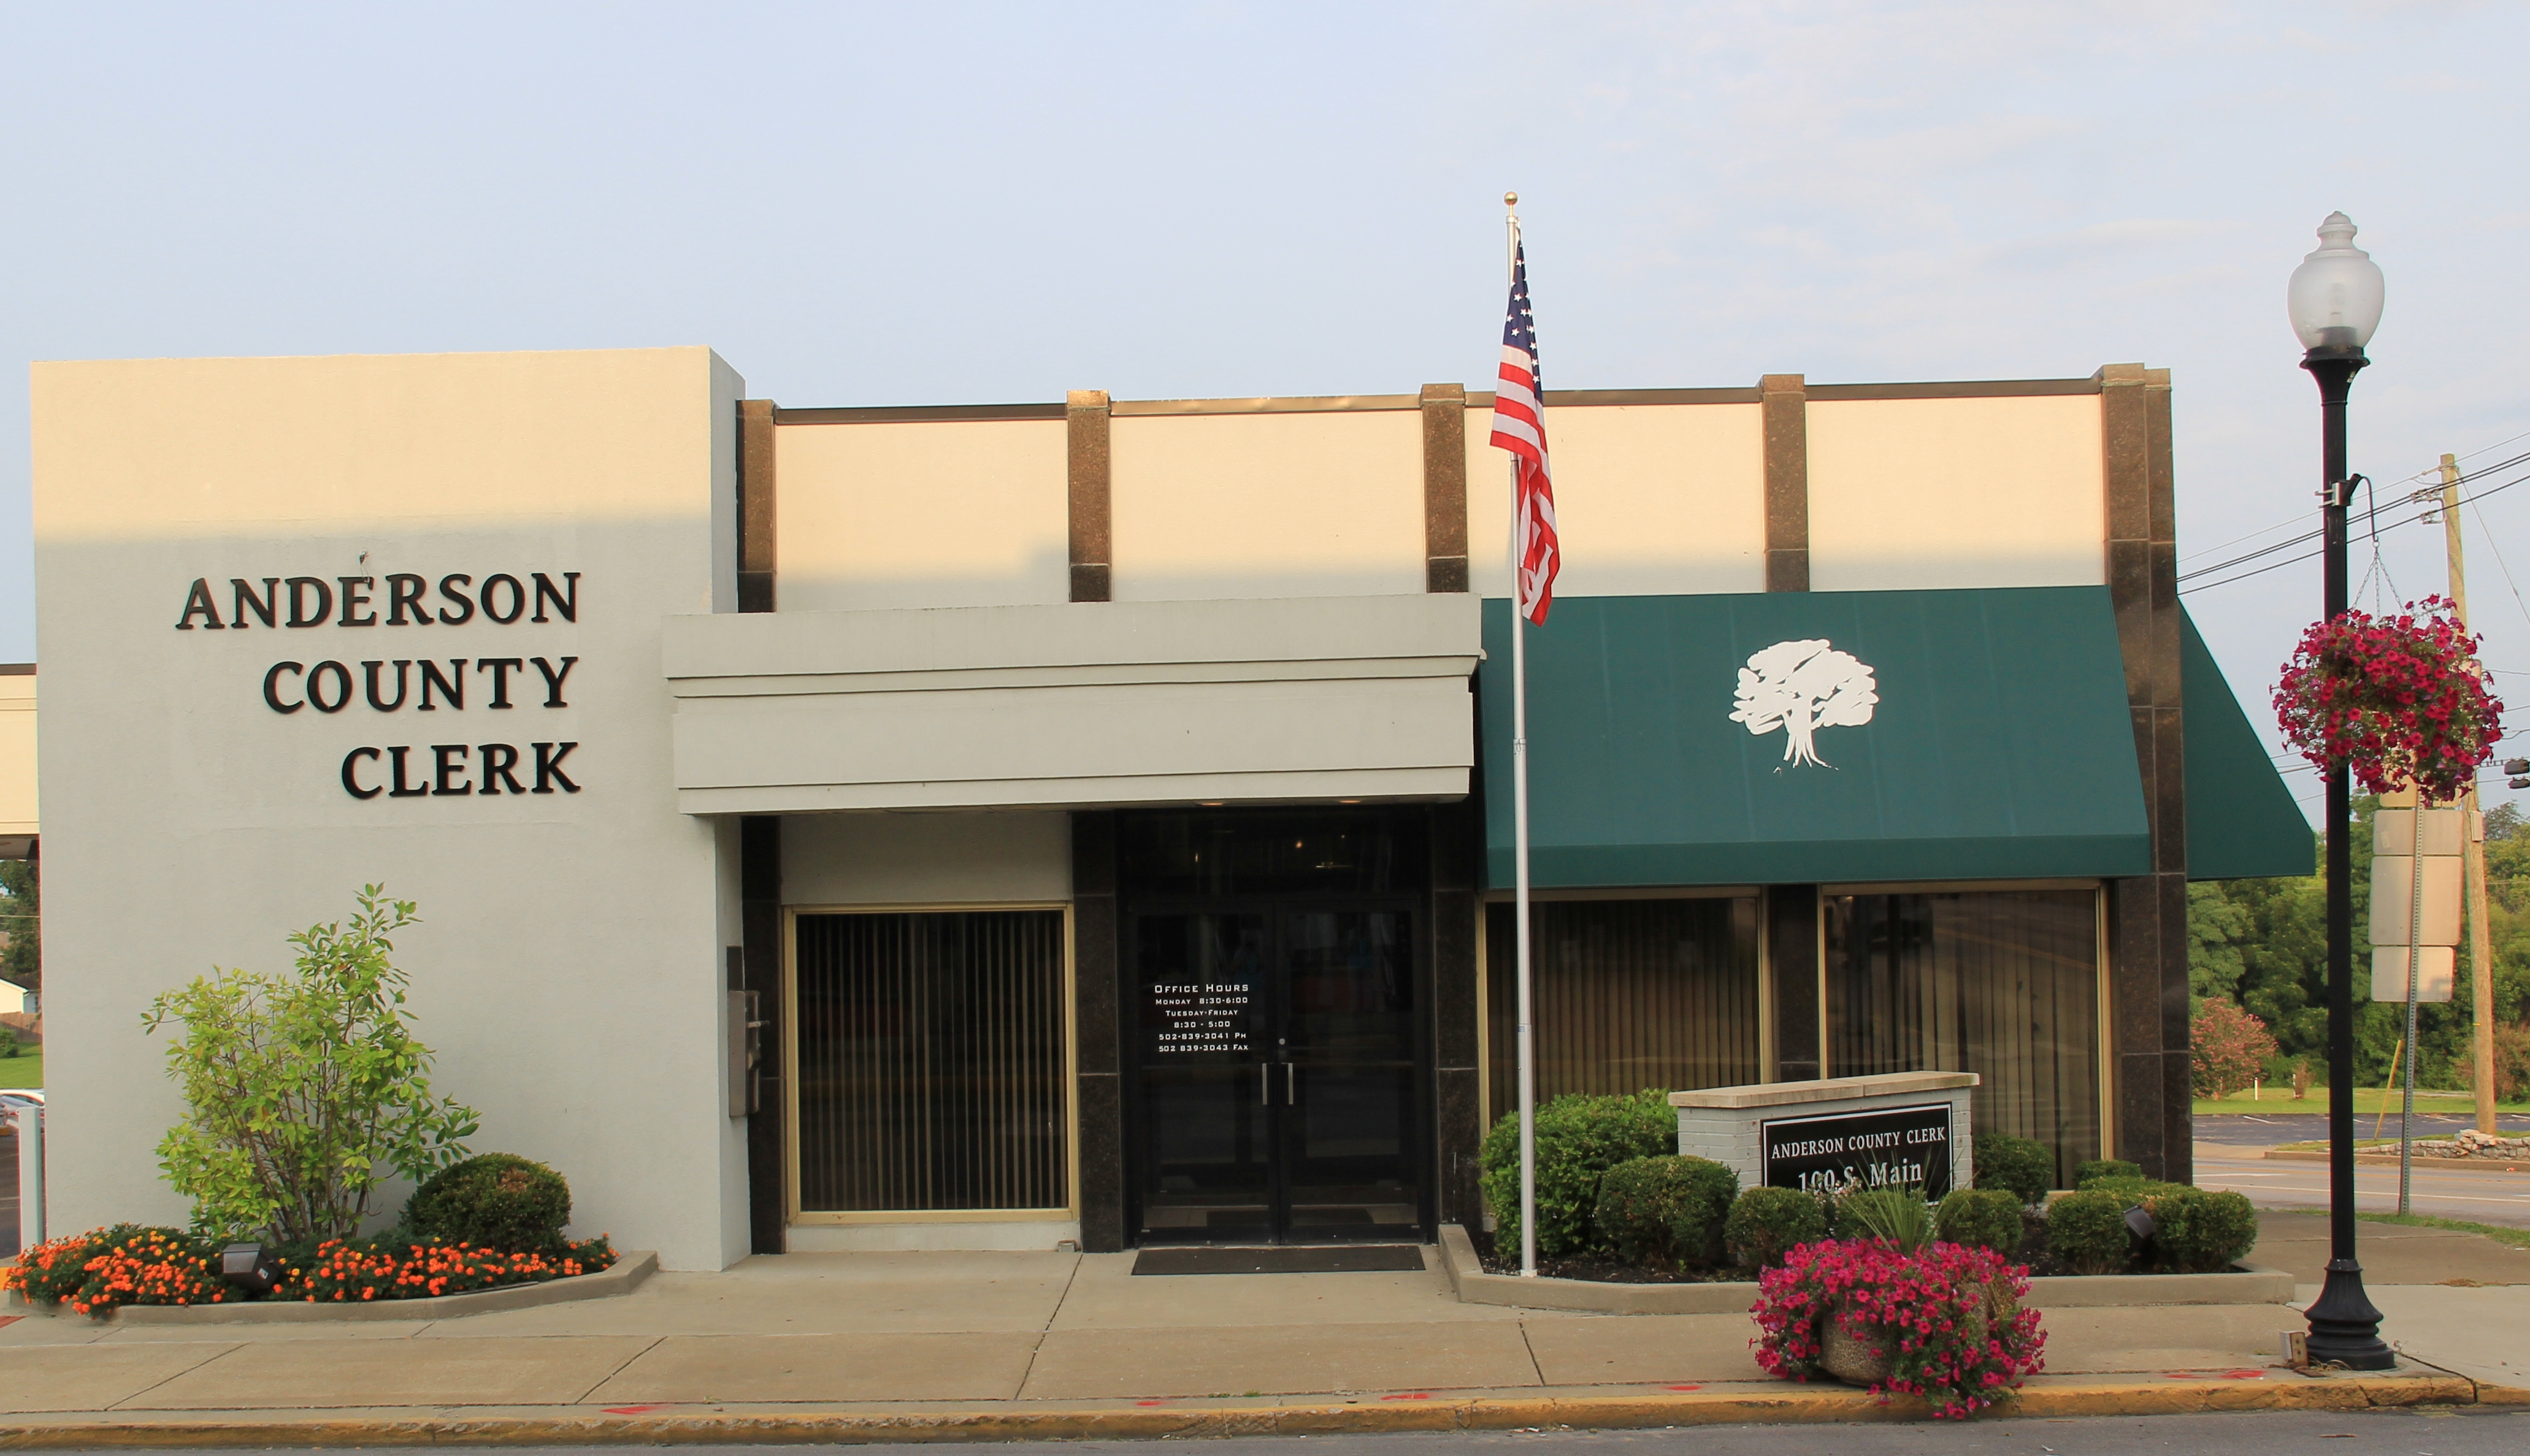 Anderson County Clerk Welcome